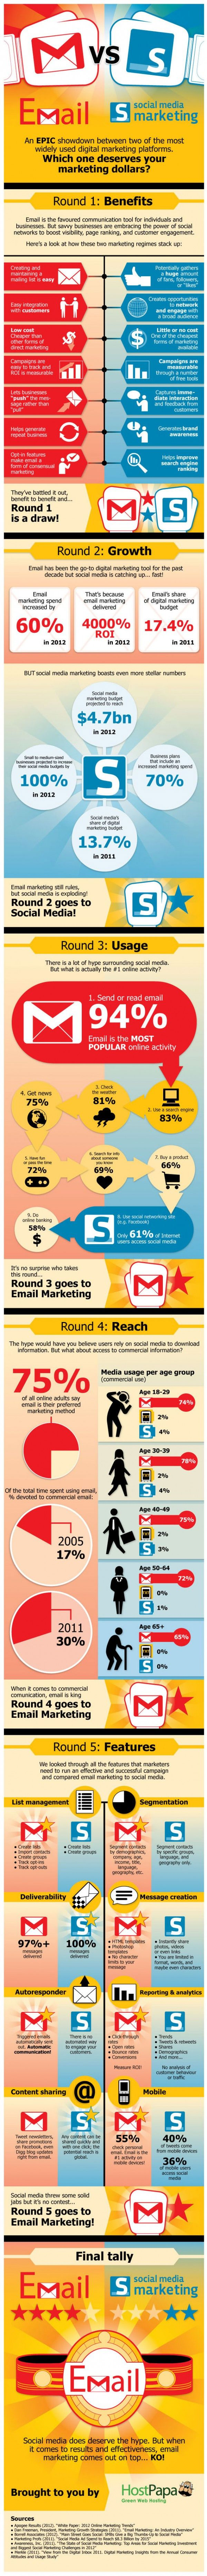 email marketing vs social infographic